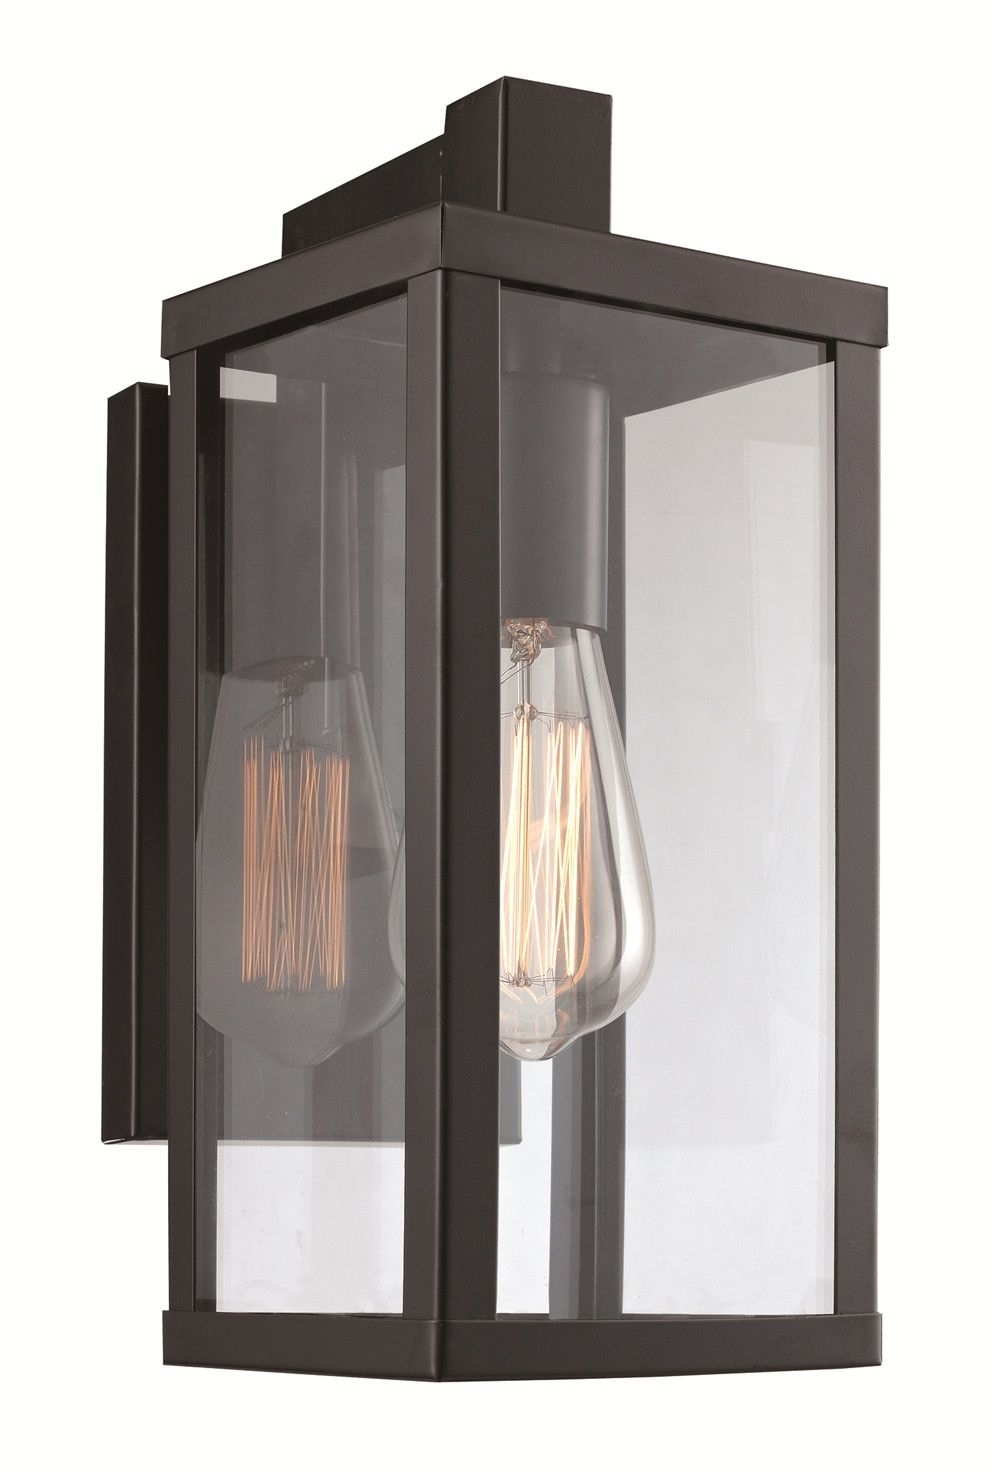 Furniture Mid Century Modern Outdoor Light Fixtures Lighting Led with regard to Modern Outdoor Lanterns (Image 6 of 20)